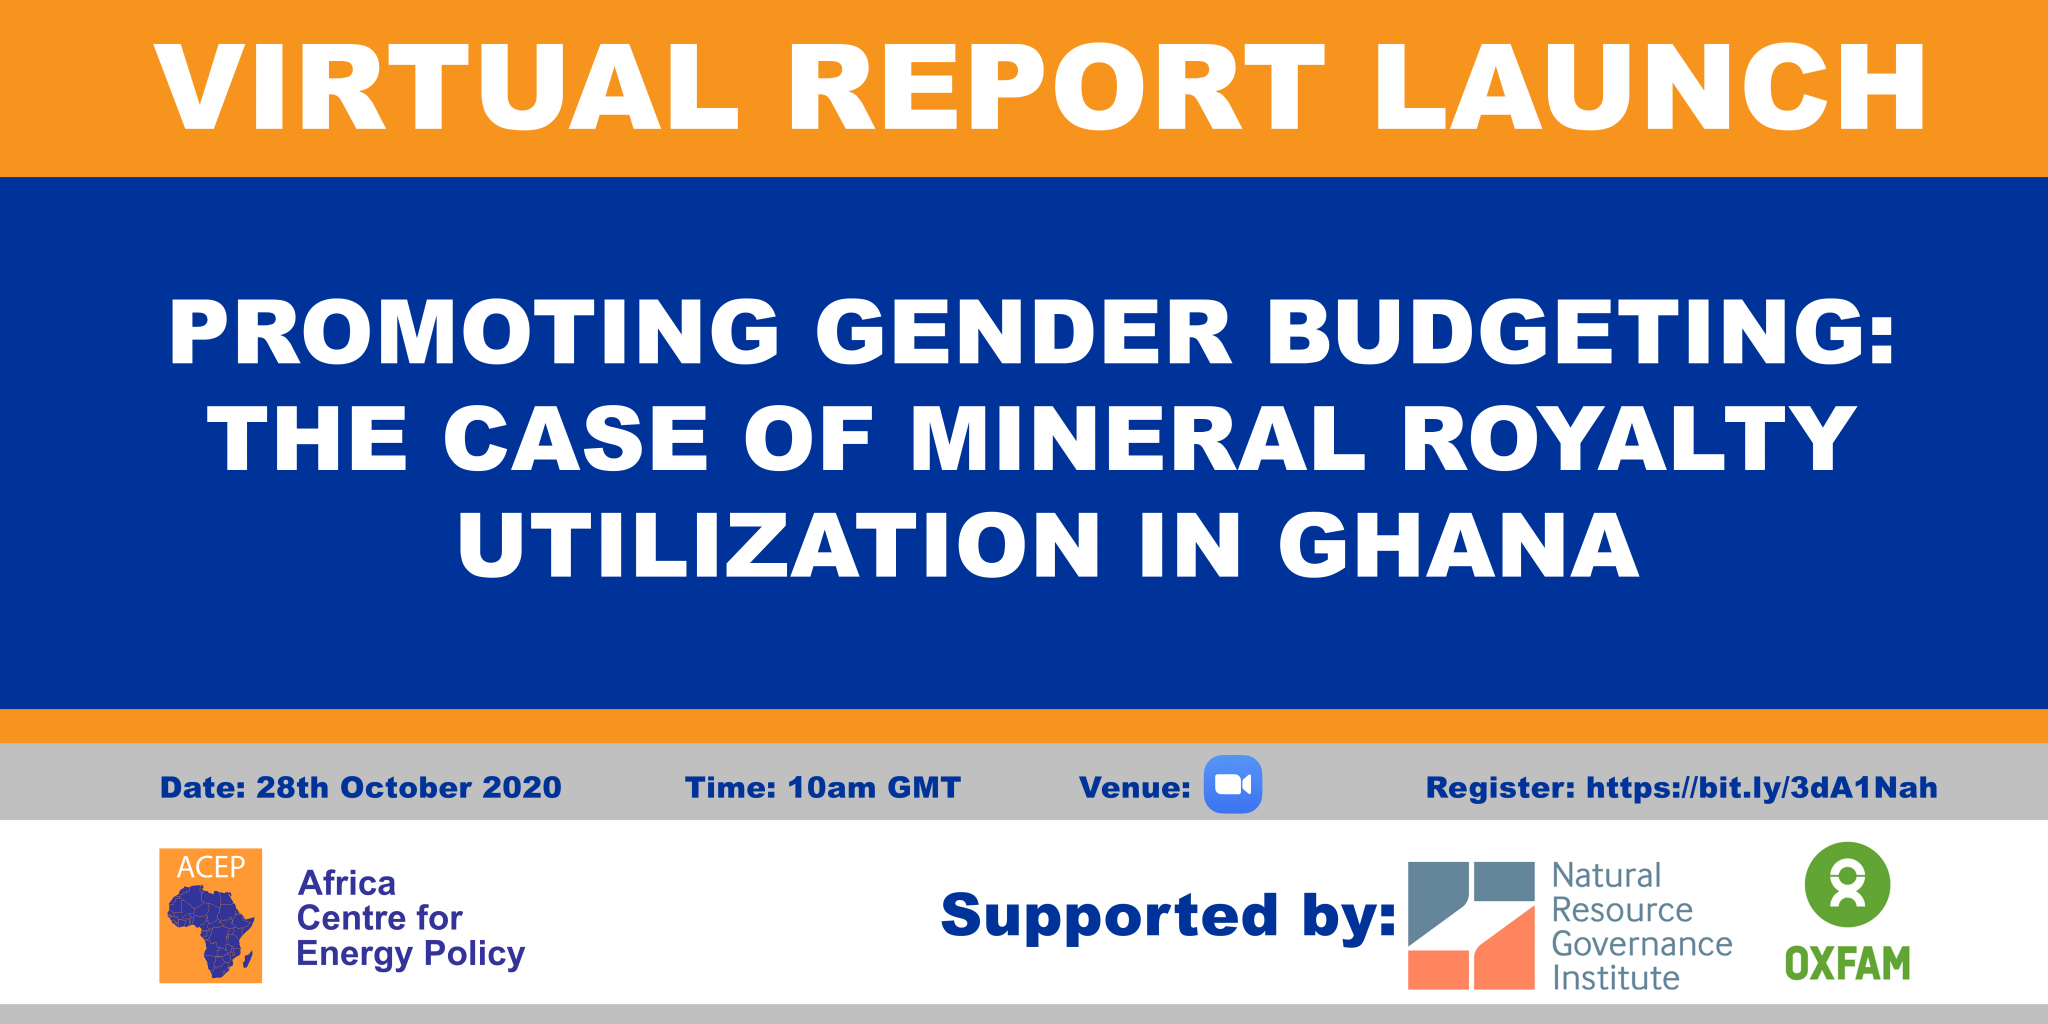 Promoting Gender Budgeting Report Launch